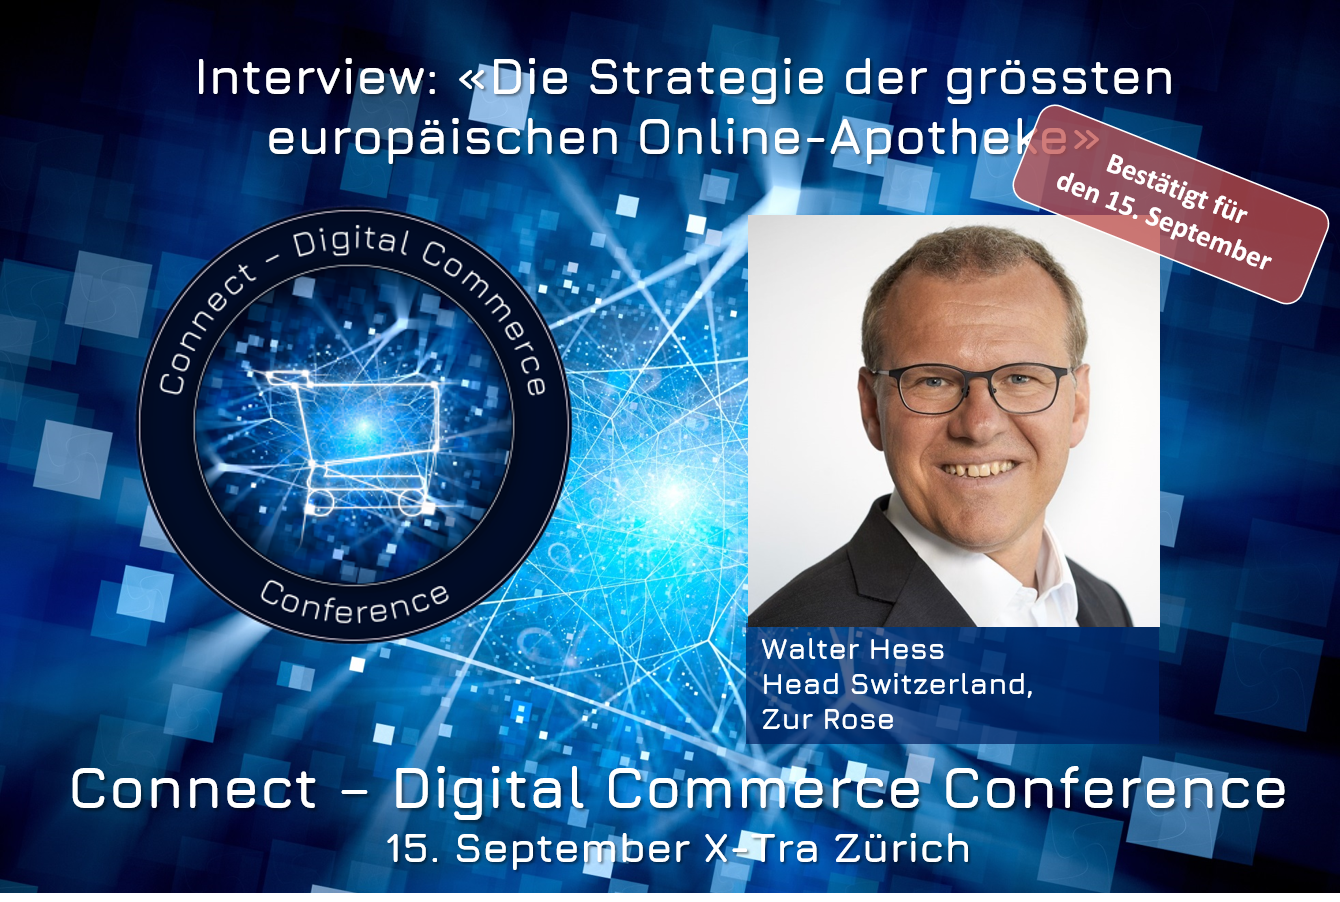 Walter Hess, Head Switzerland Zur Rose an der Connect - Digital Commerce Conference am 15. September 2020 im X-Tra in Zürich